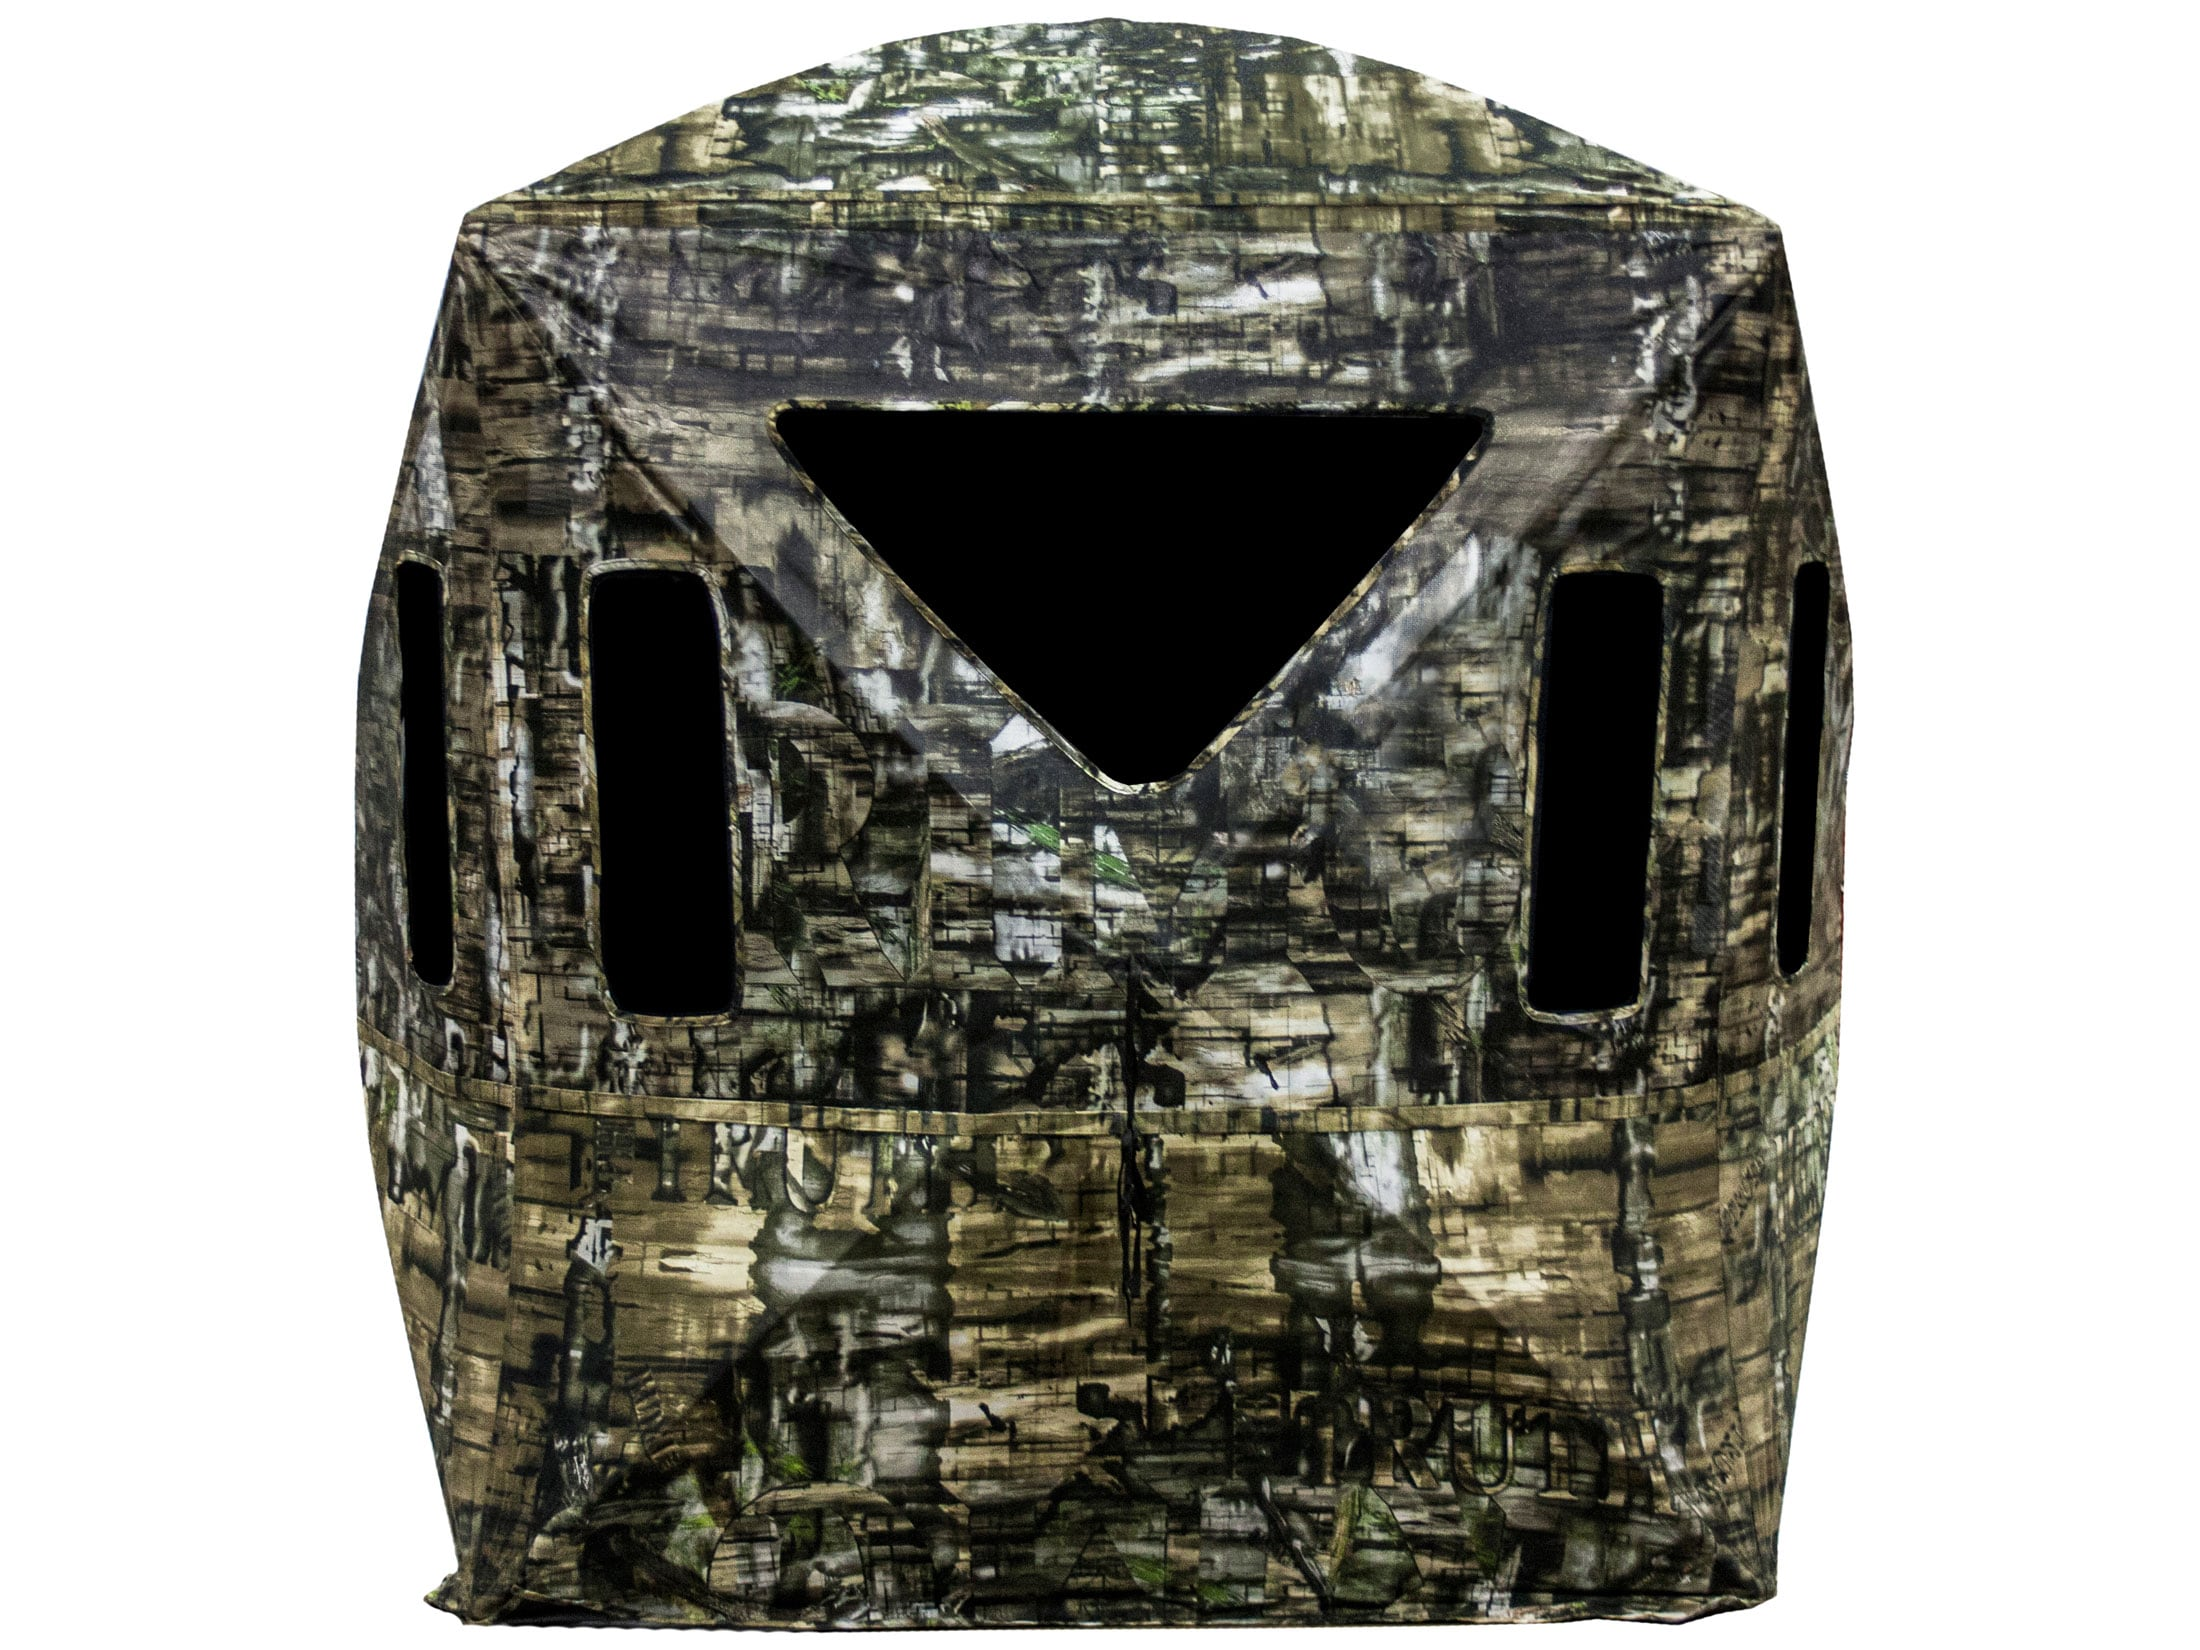 Primos Double Bull Surroundview 270 Ground Blind 55 X 55 X 70